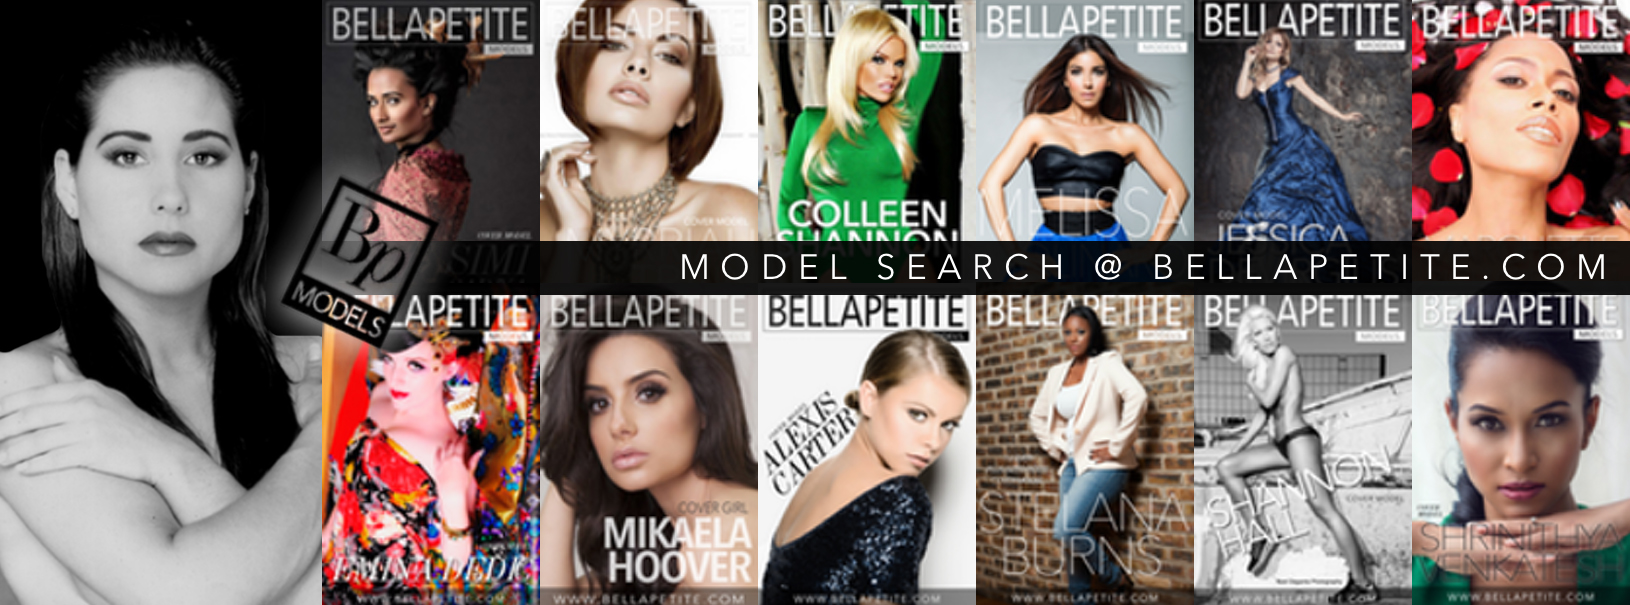 Bella-Petite Cover-Models for 2016